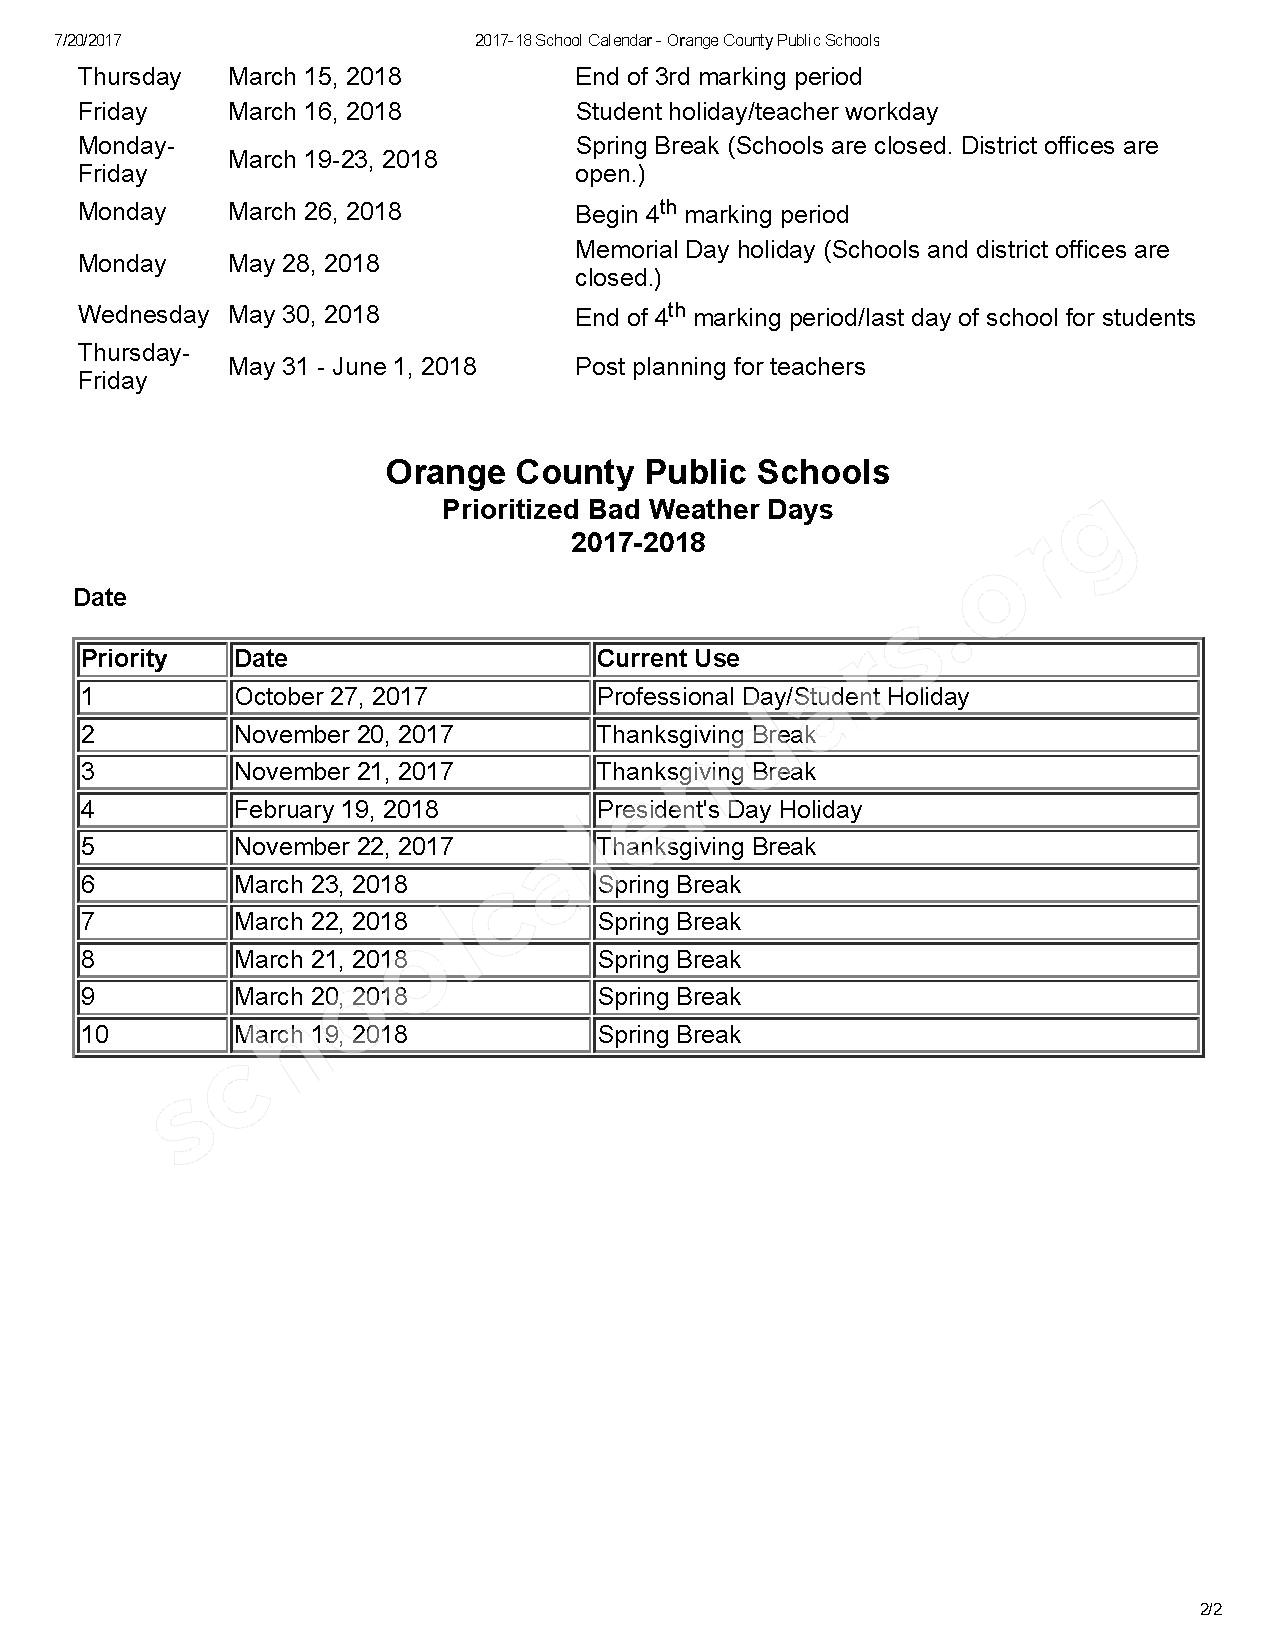 2017 - 2018 OCPS Calendar – Pre-School Evaluation Center – page 2